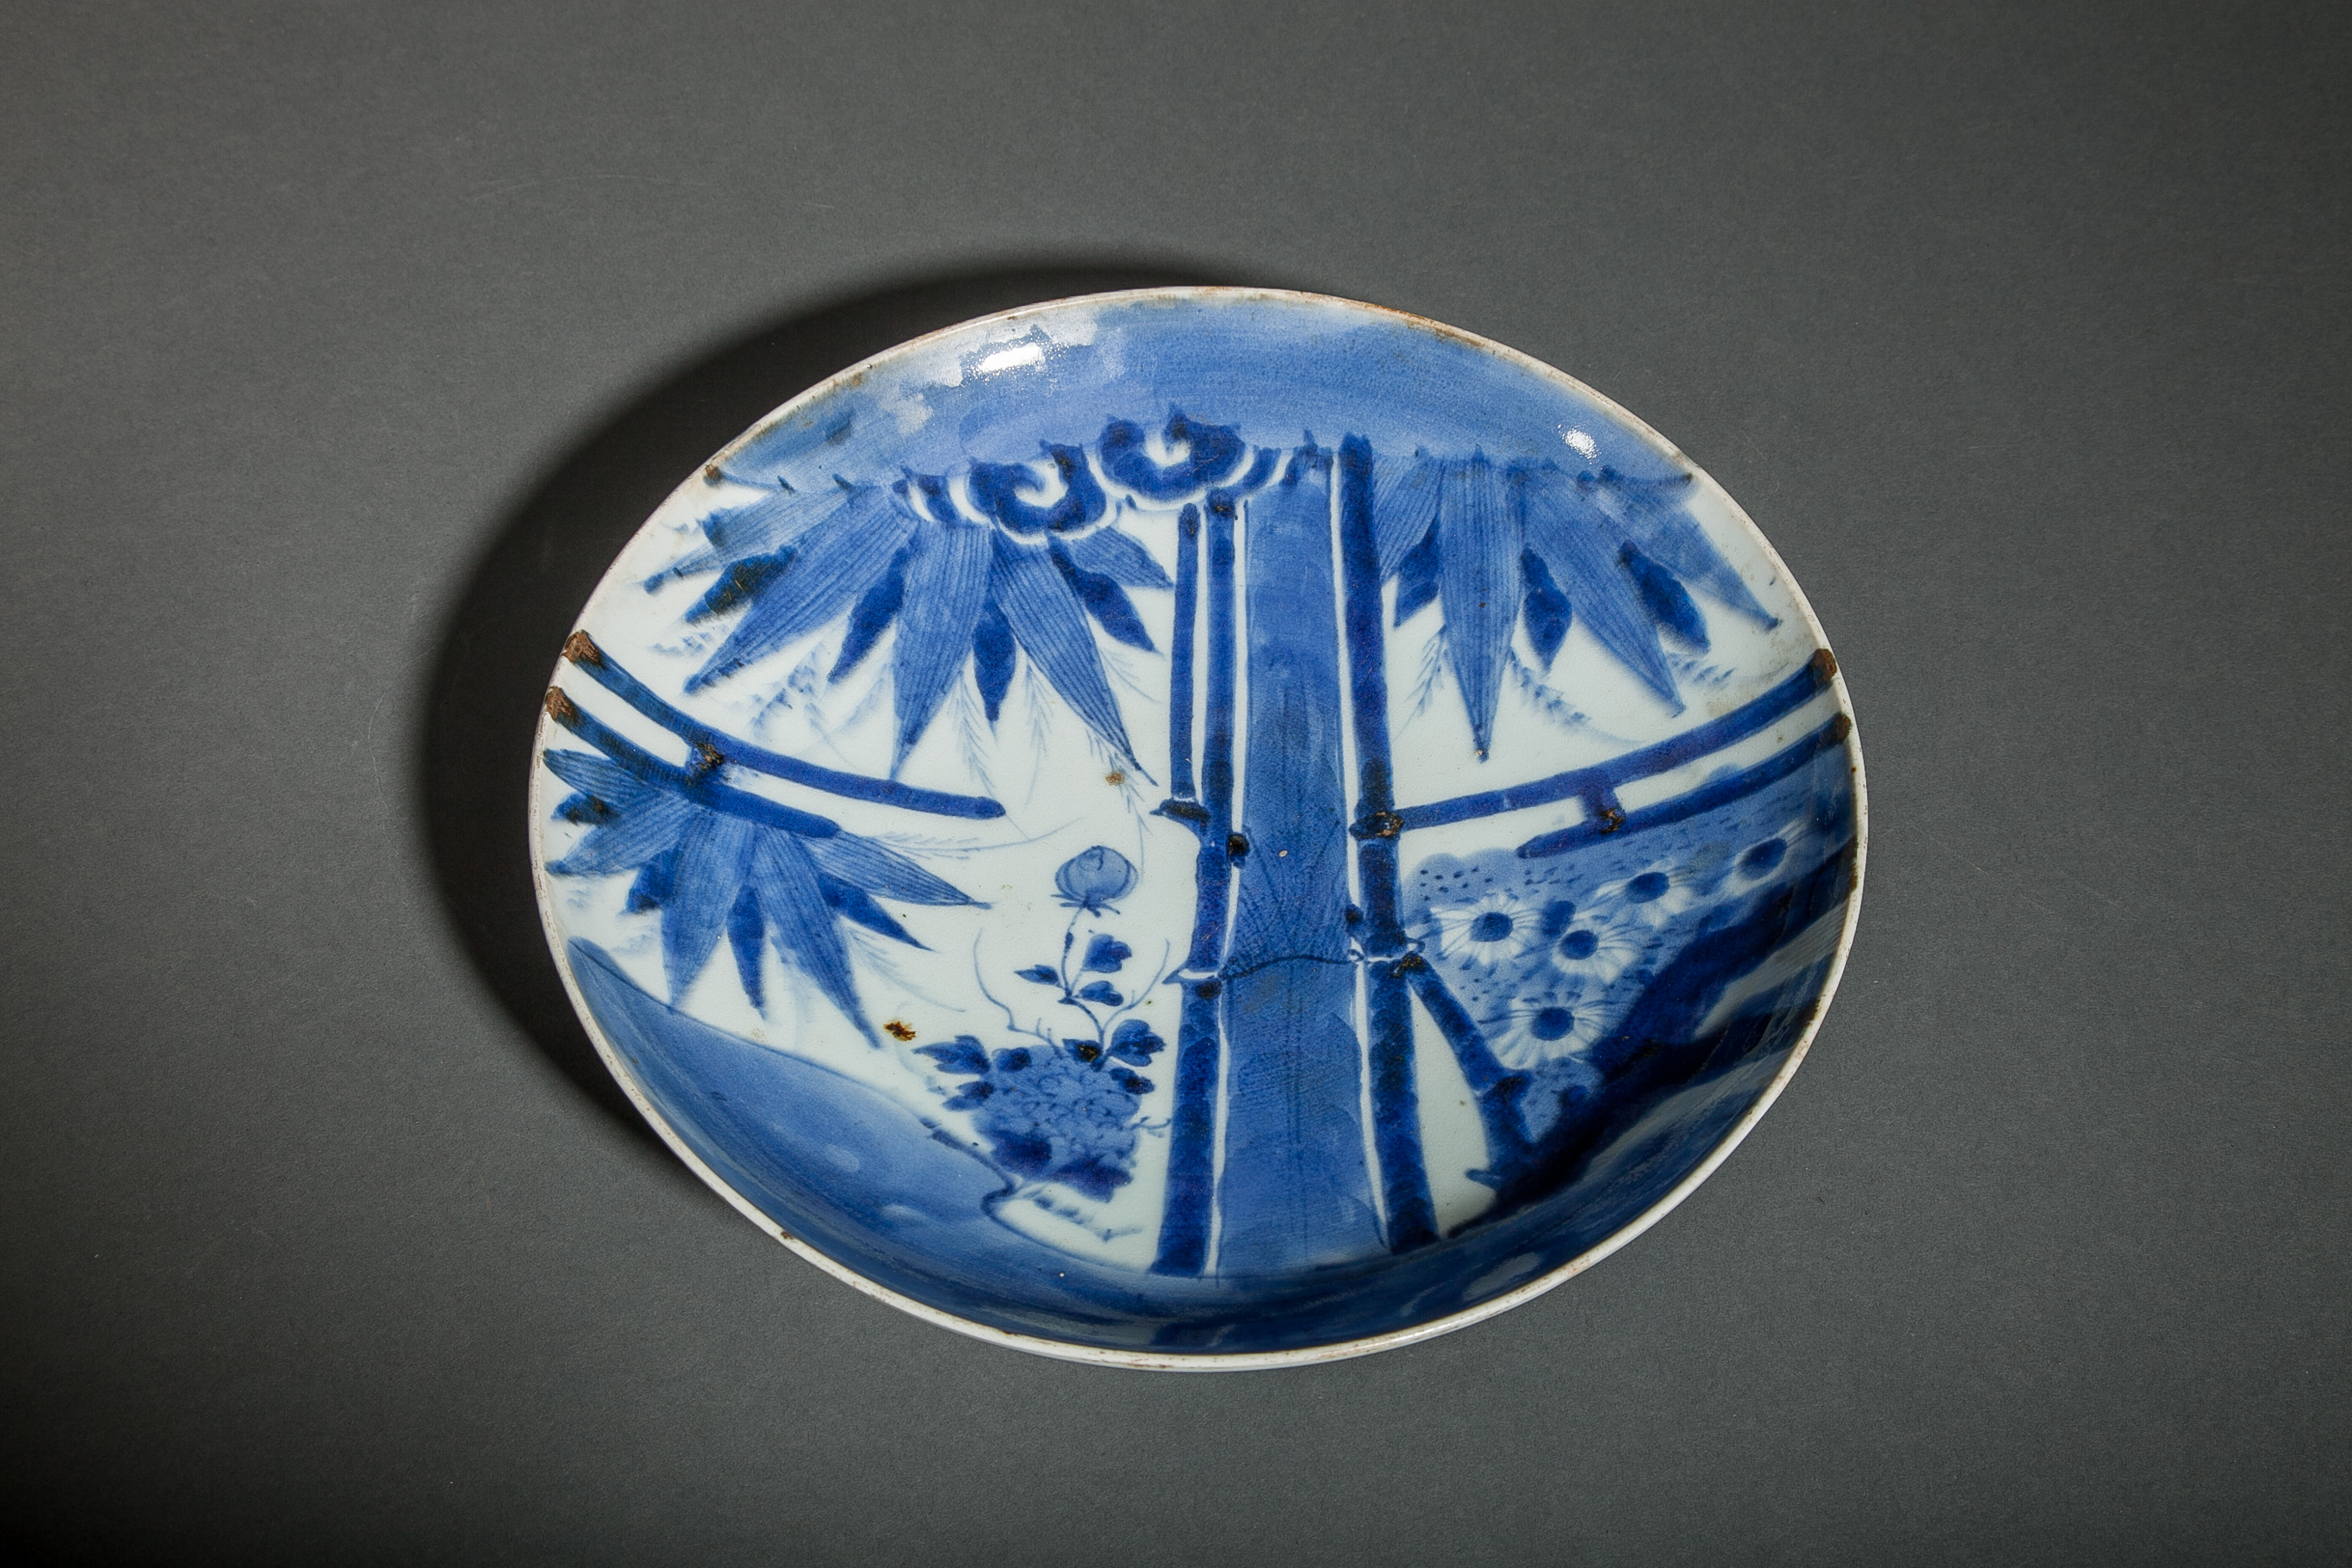 Japanese Blue and White Imari Plate with Bamboo Design